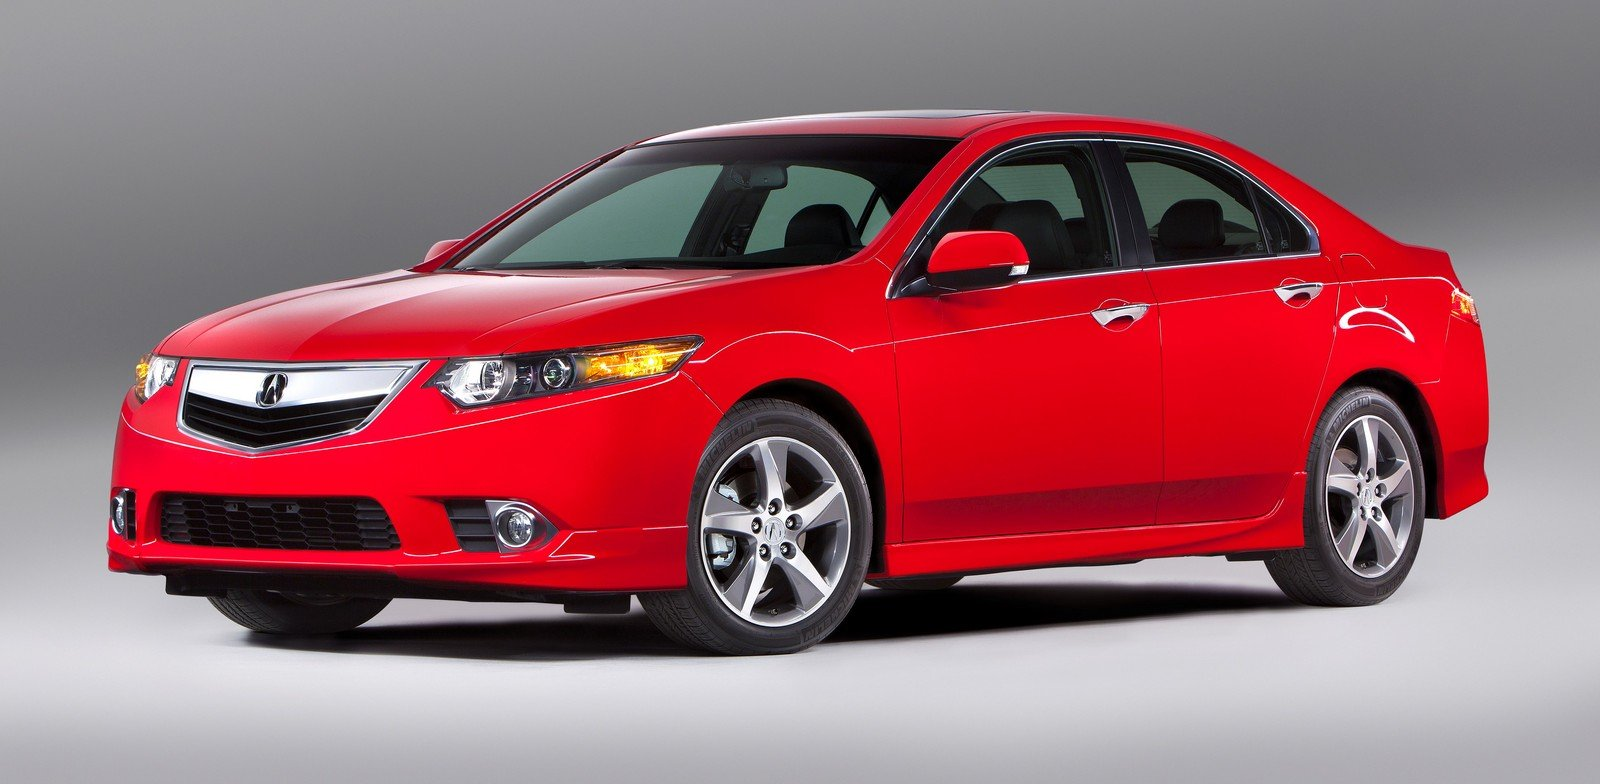 2013 acura tsx picture 511005 car review top speed. Black Bedroom Furniture Sets. Home Design Ideas